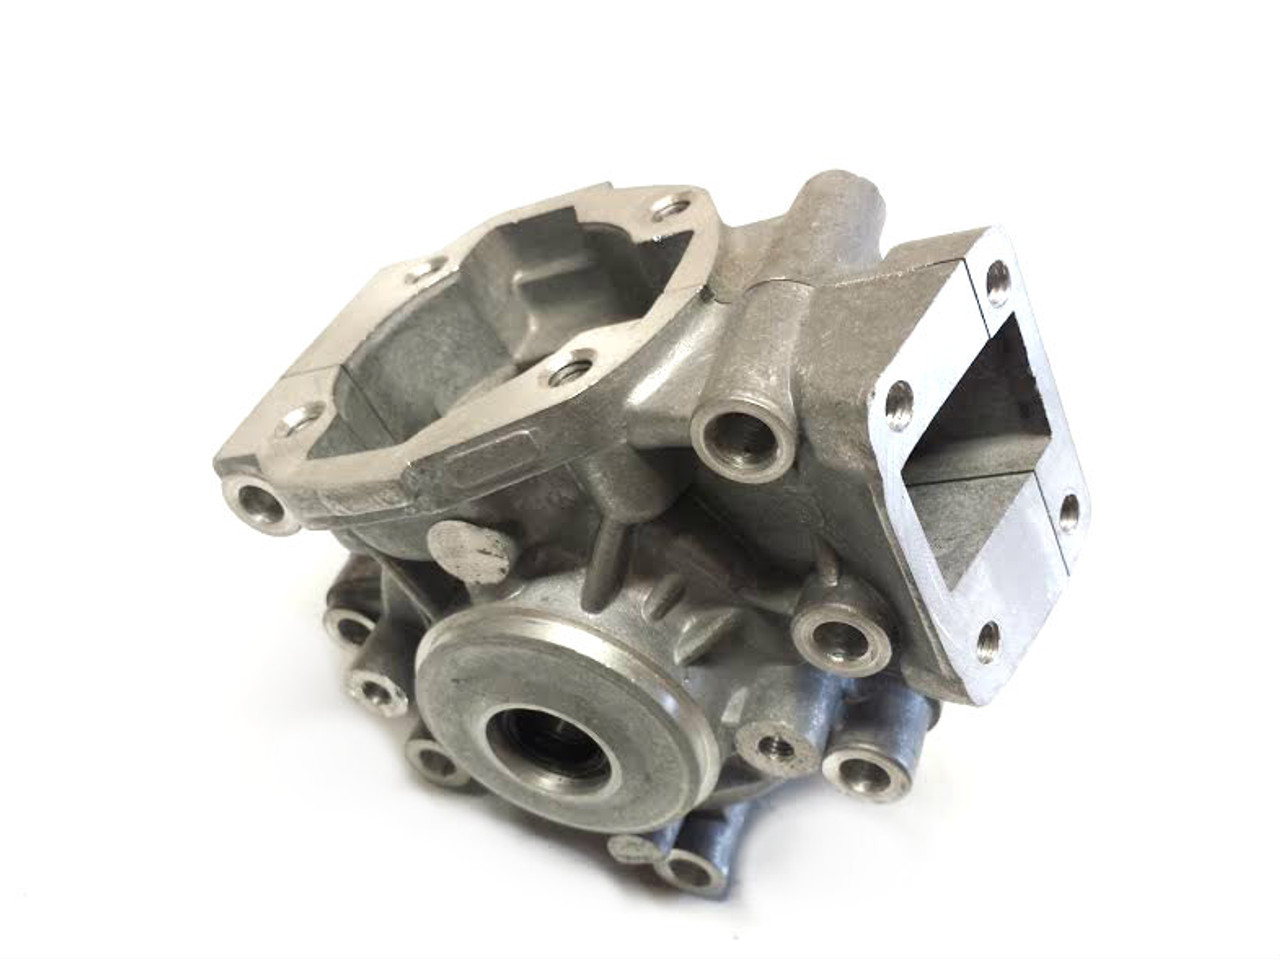 Motobecane AV10 Complete Engine Case with Bearings, Seals, and Cylinder Studs,